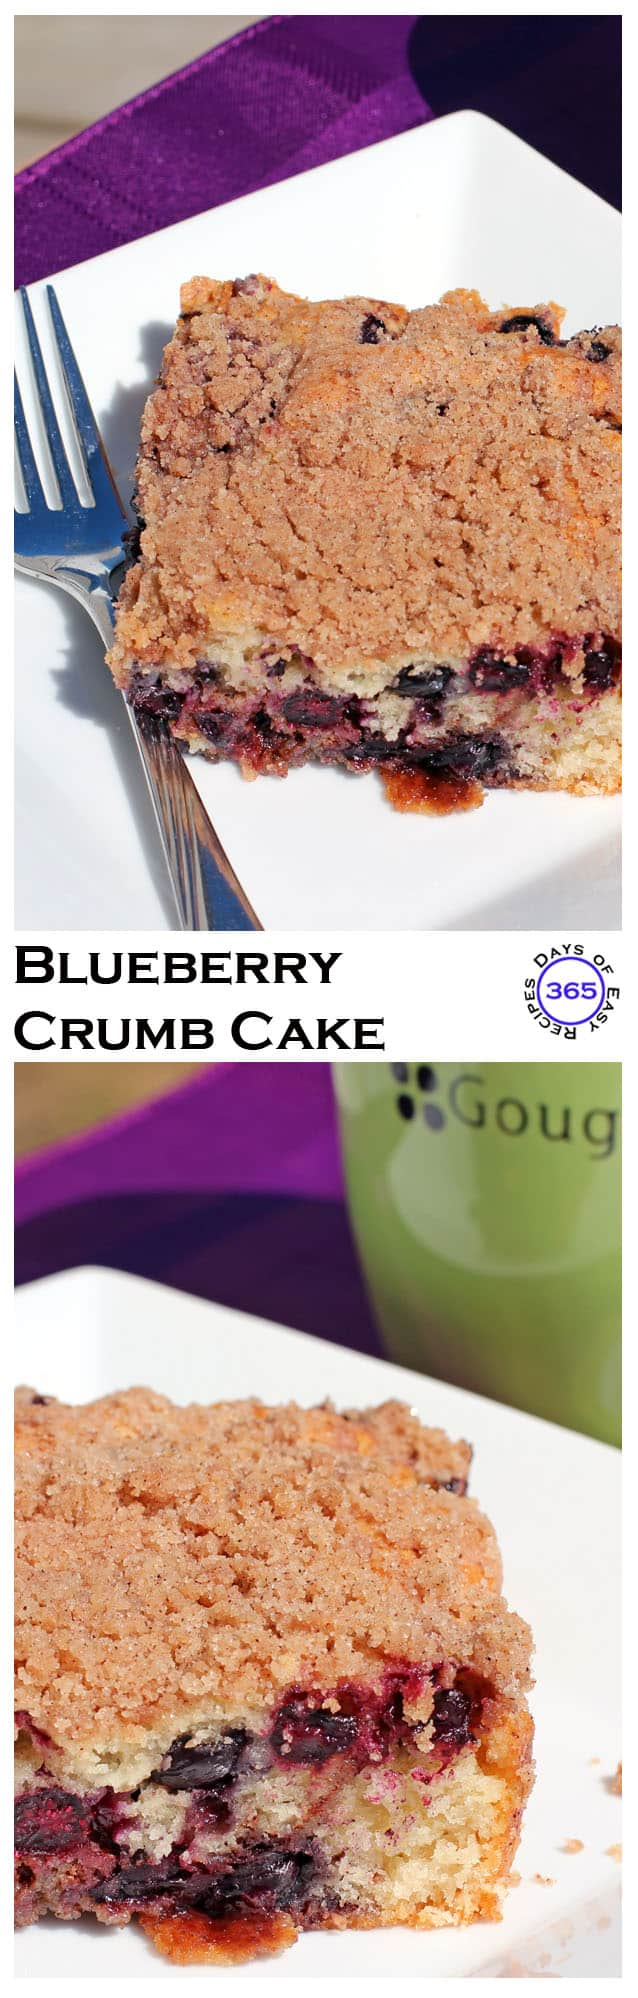 This blueberry crumb cake makes the perfect coffee break treat | 365 Days of Easy Recipes